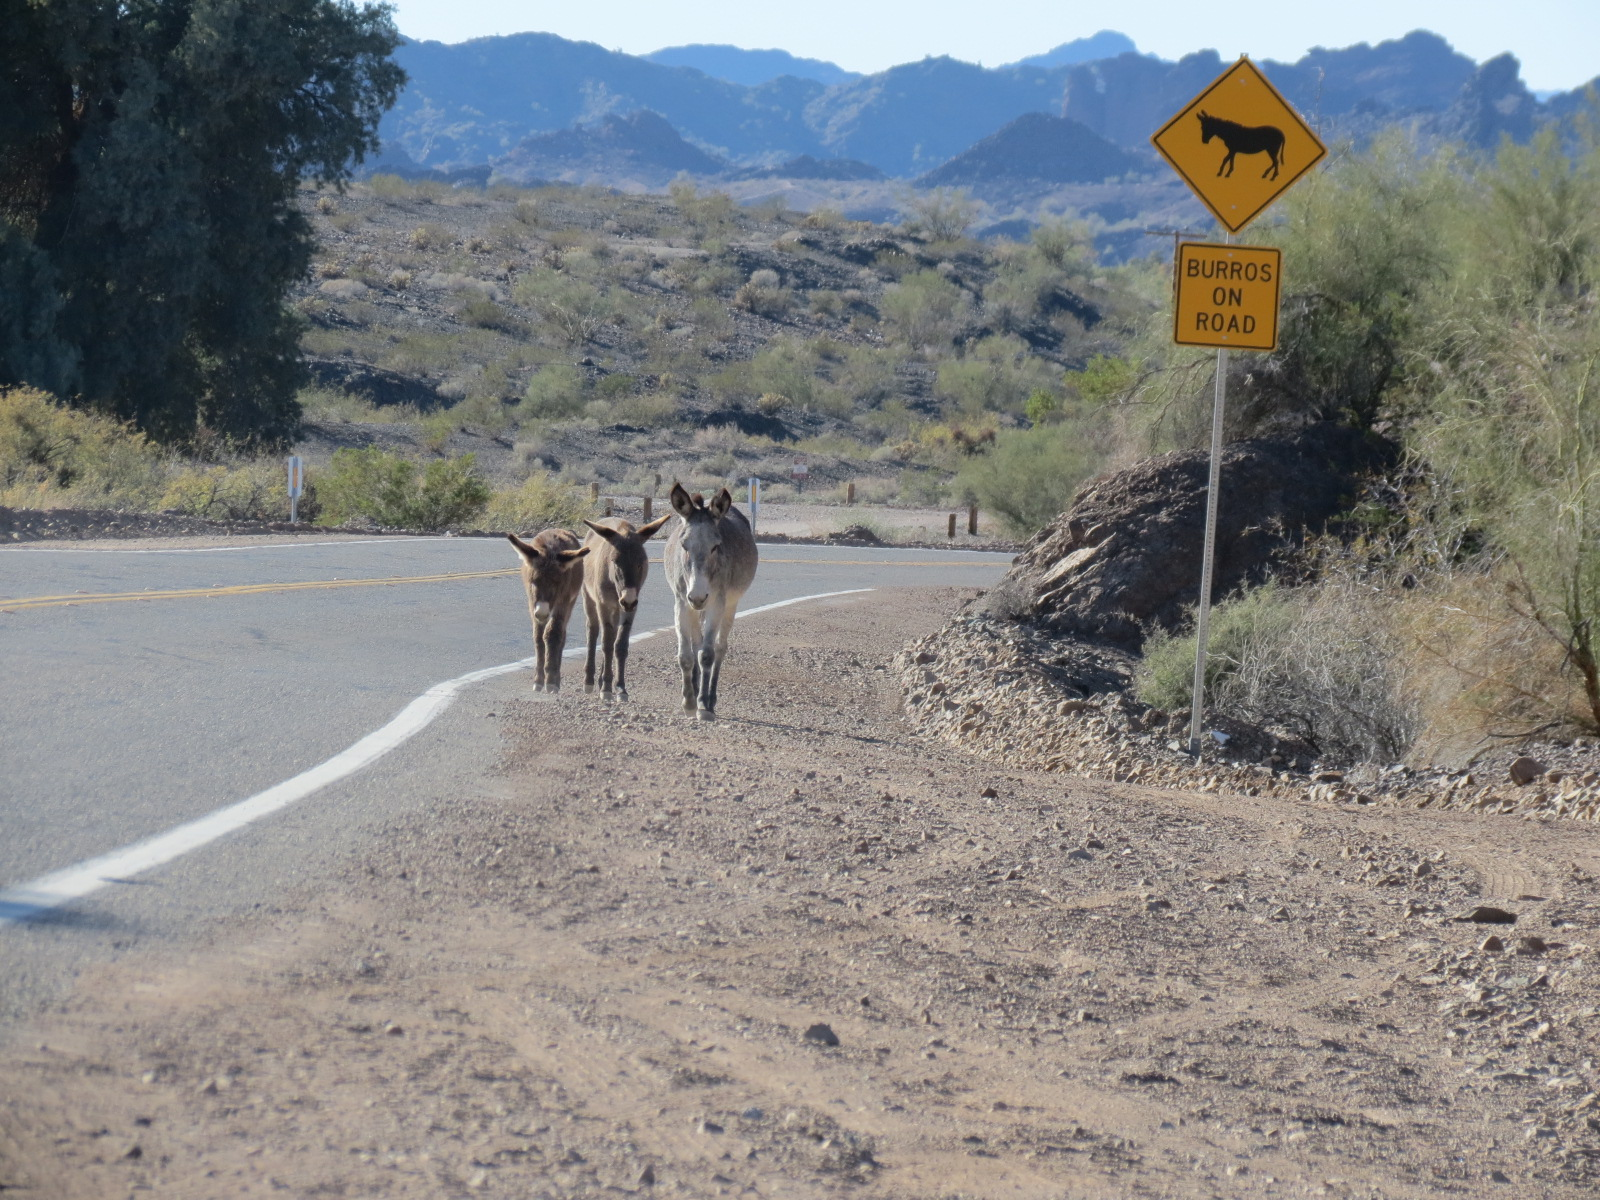 Wild Burros taking a stroll down the roadside in Parker AZ